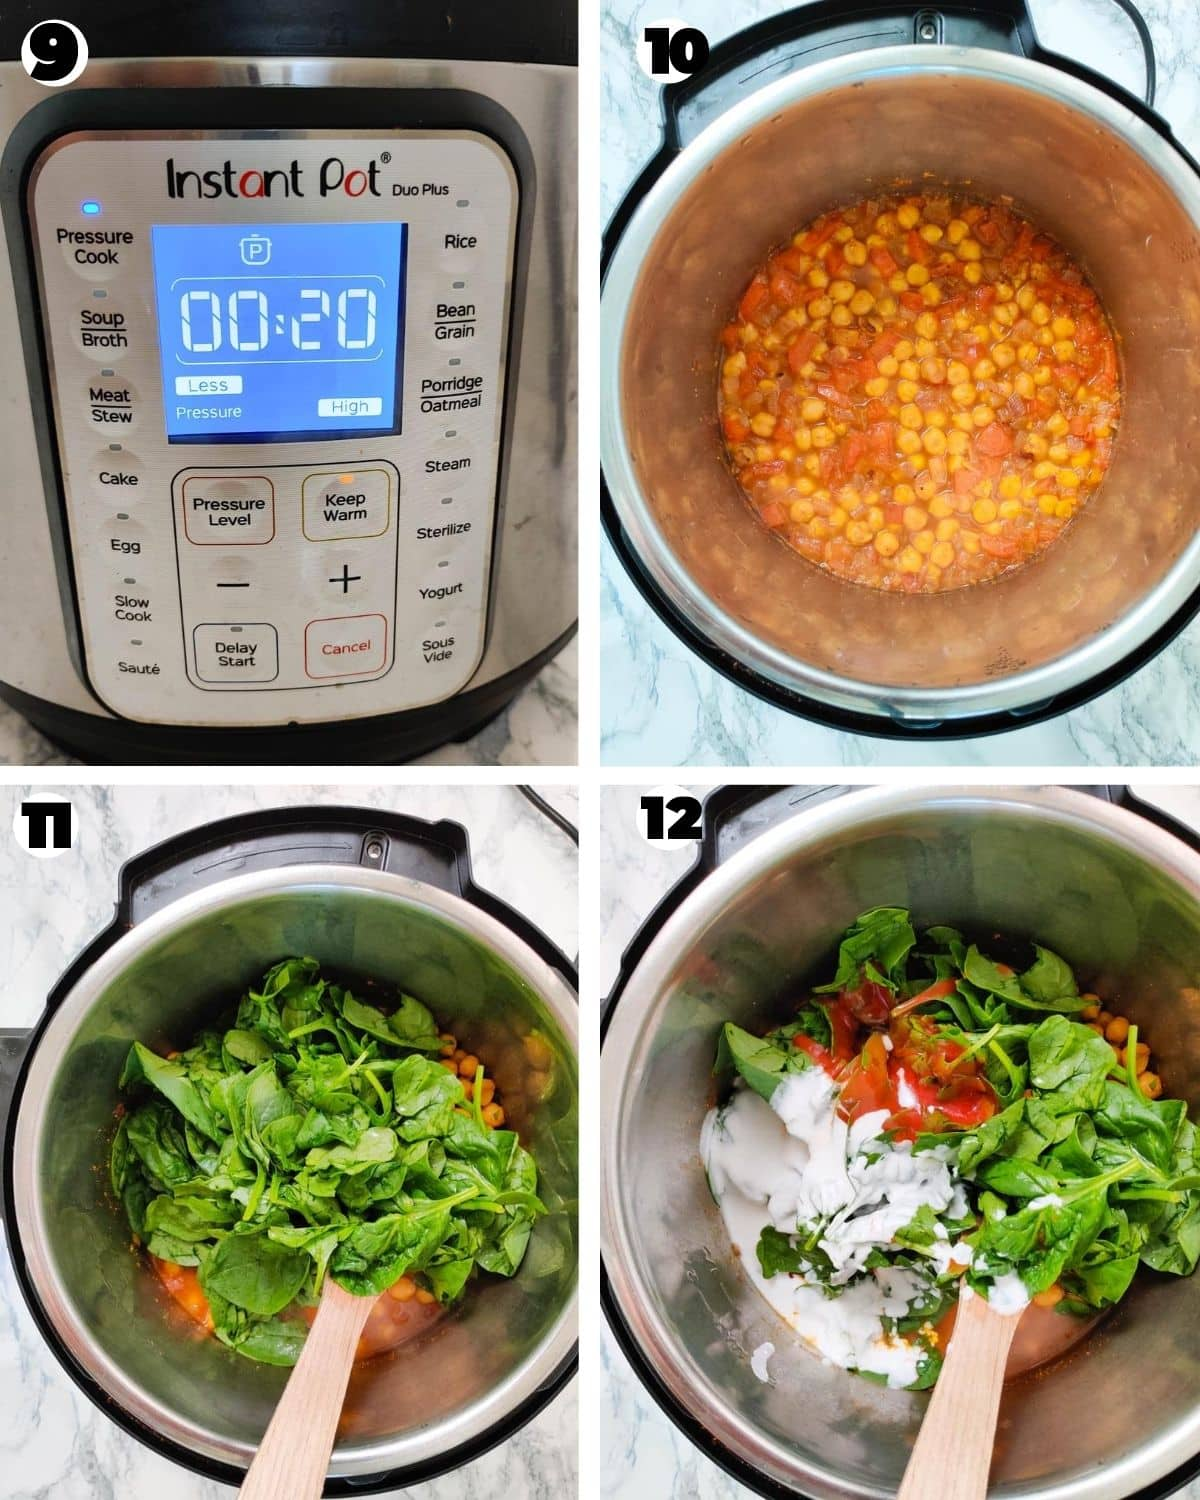 Adding spinach, coconut milk and pomato puree to cooked chickpeas in the Instant Pot